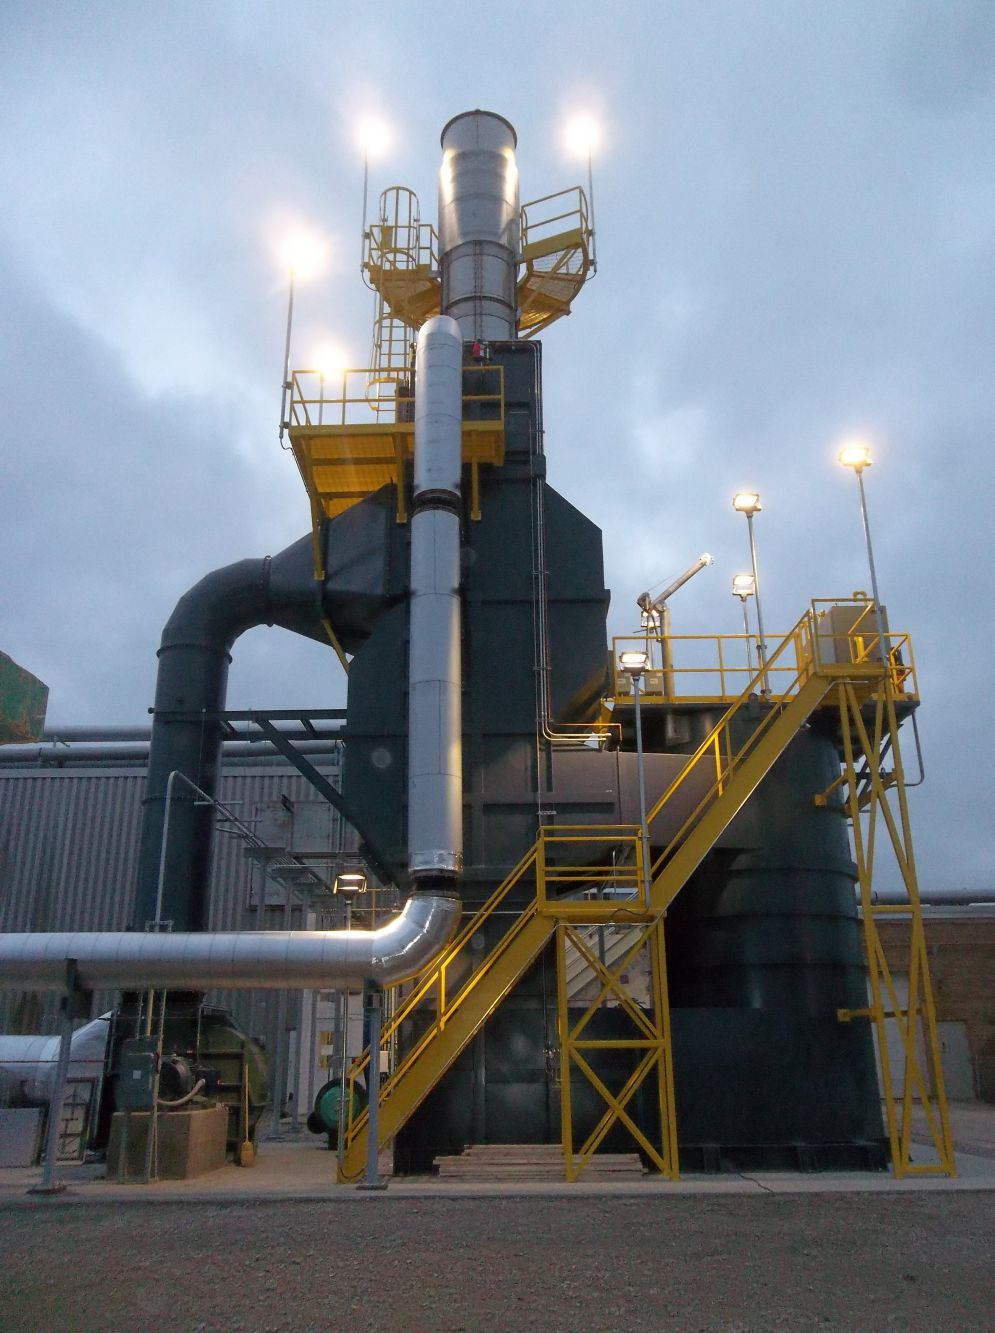 How Do I Know Which Oxidizer Is Right for Me?